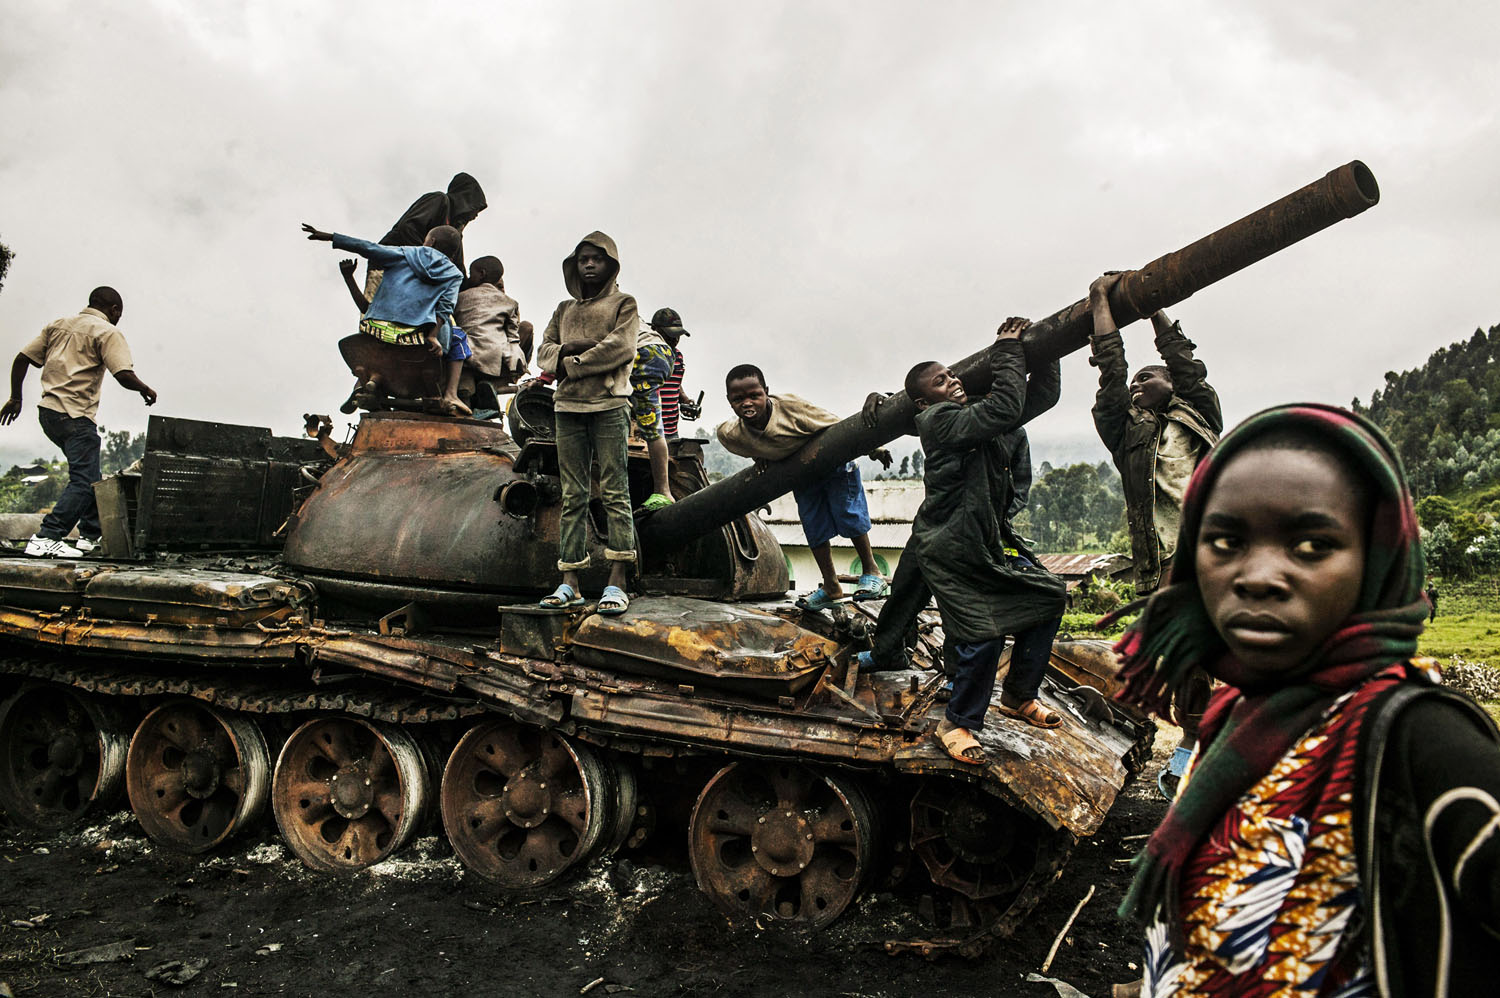 Congolese children play on a destroyed M-23 tank near Kibumba, north of Goma on Tuesday. Kibumba was the site of heavy fighting between the Congolese army and M-23 rebels.